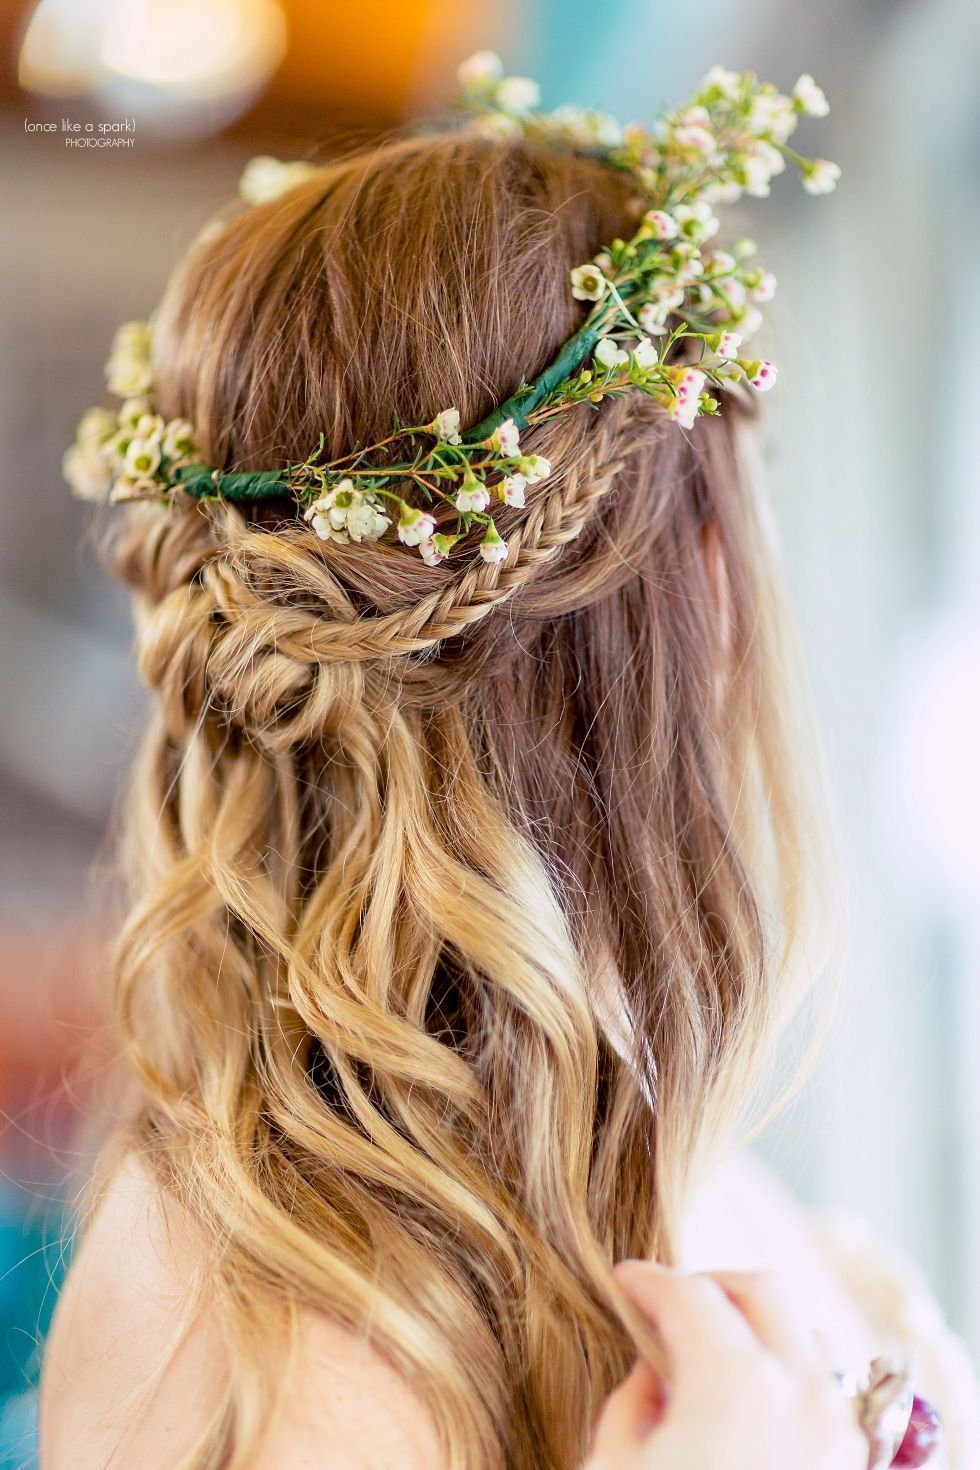 Bohemianinspired wedding hair simple flower crown for your wedding